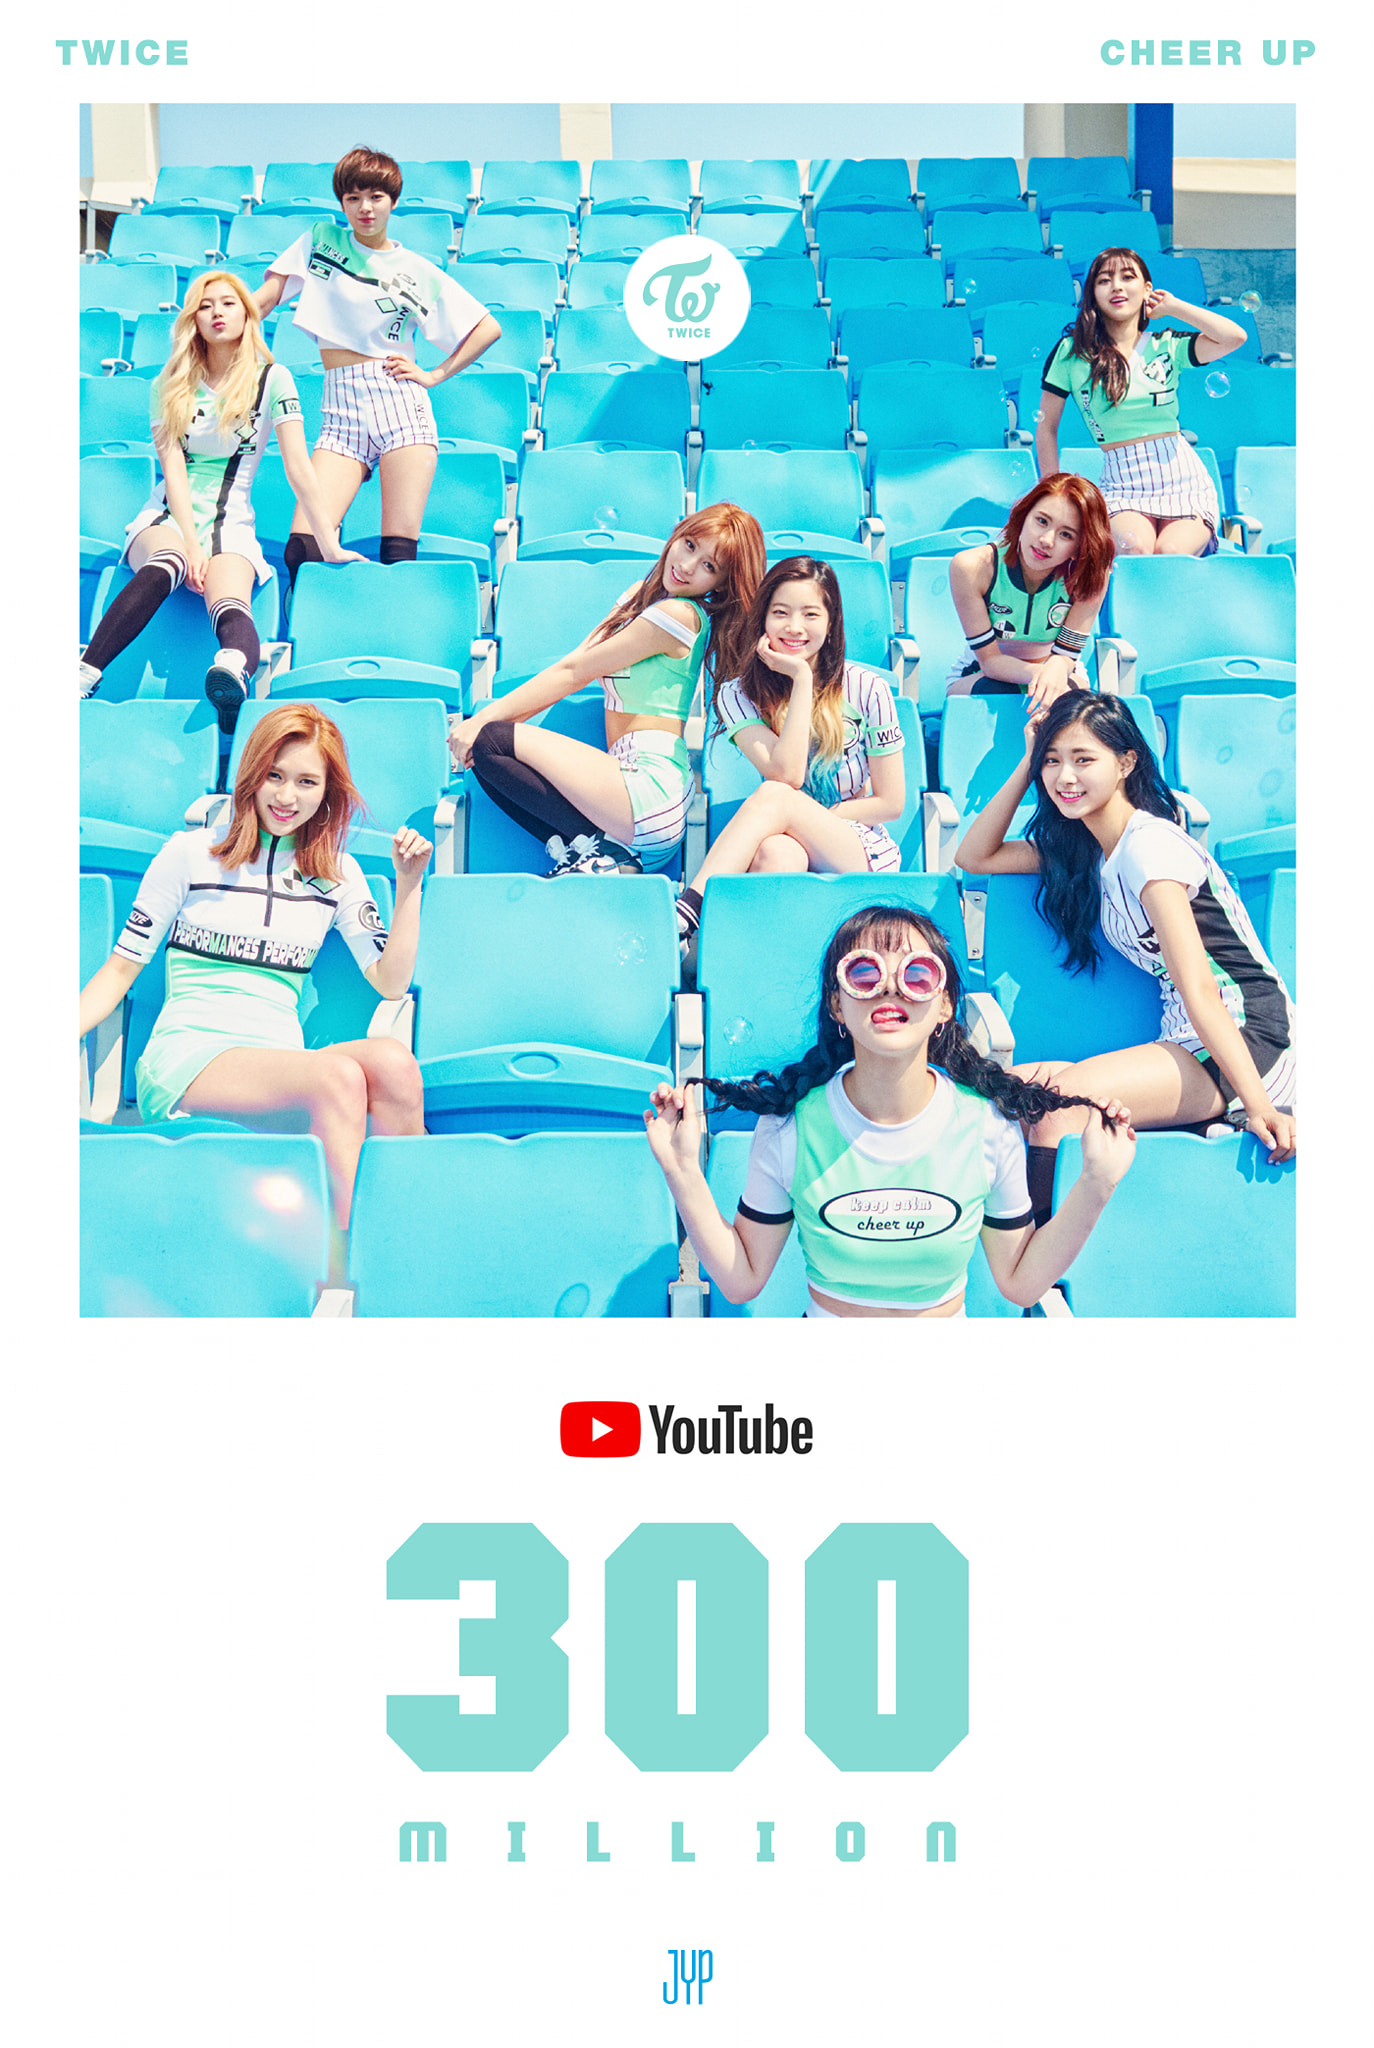 TWICE Cheer Up 300M views photo.png